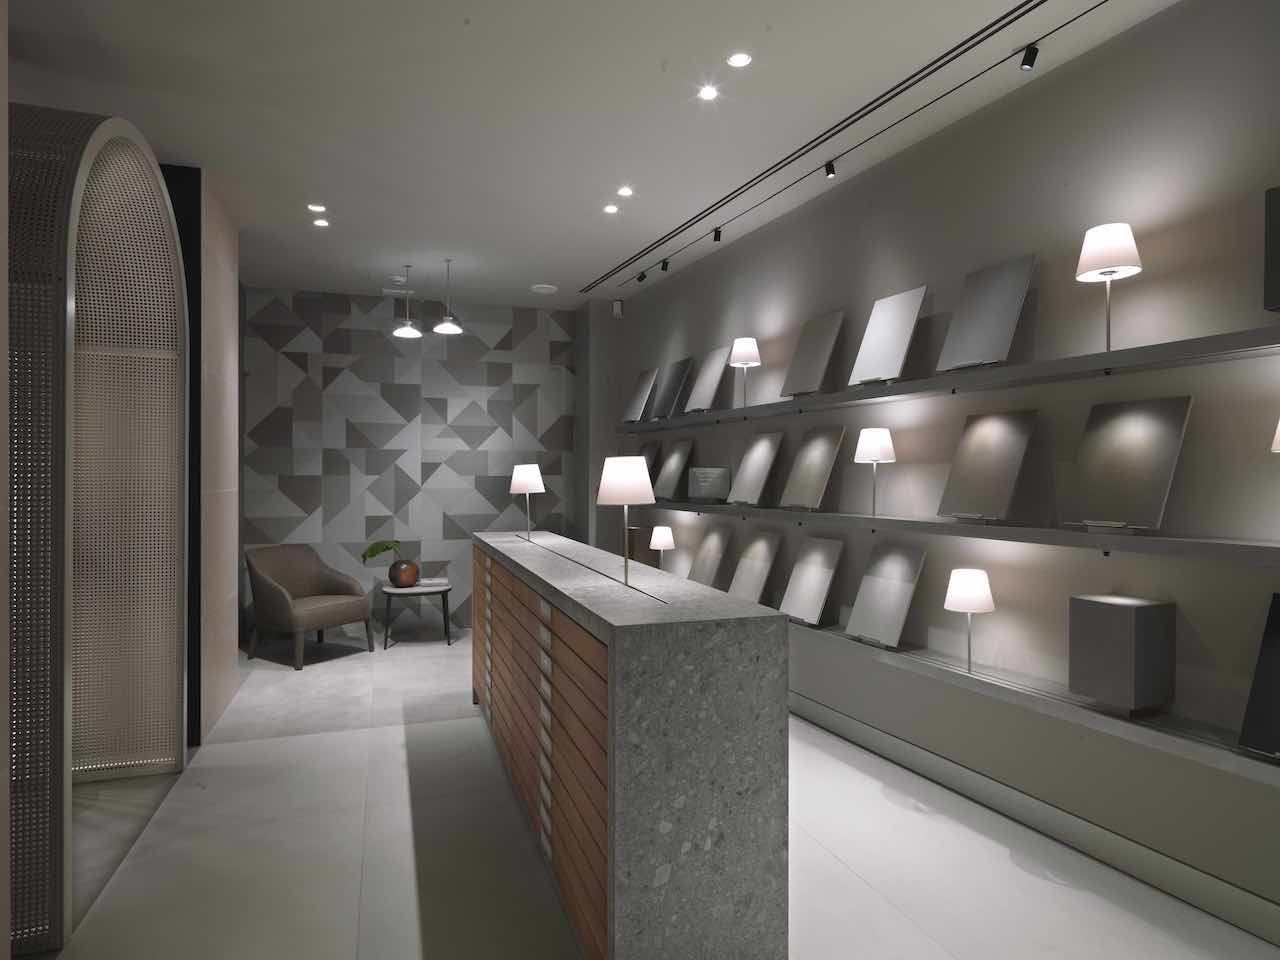 Marazzi Showroom Milano, the remodel designed by Antonio Citterio and Patricia Viel.